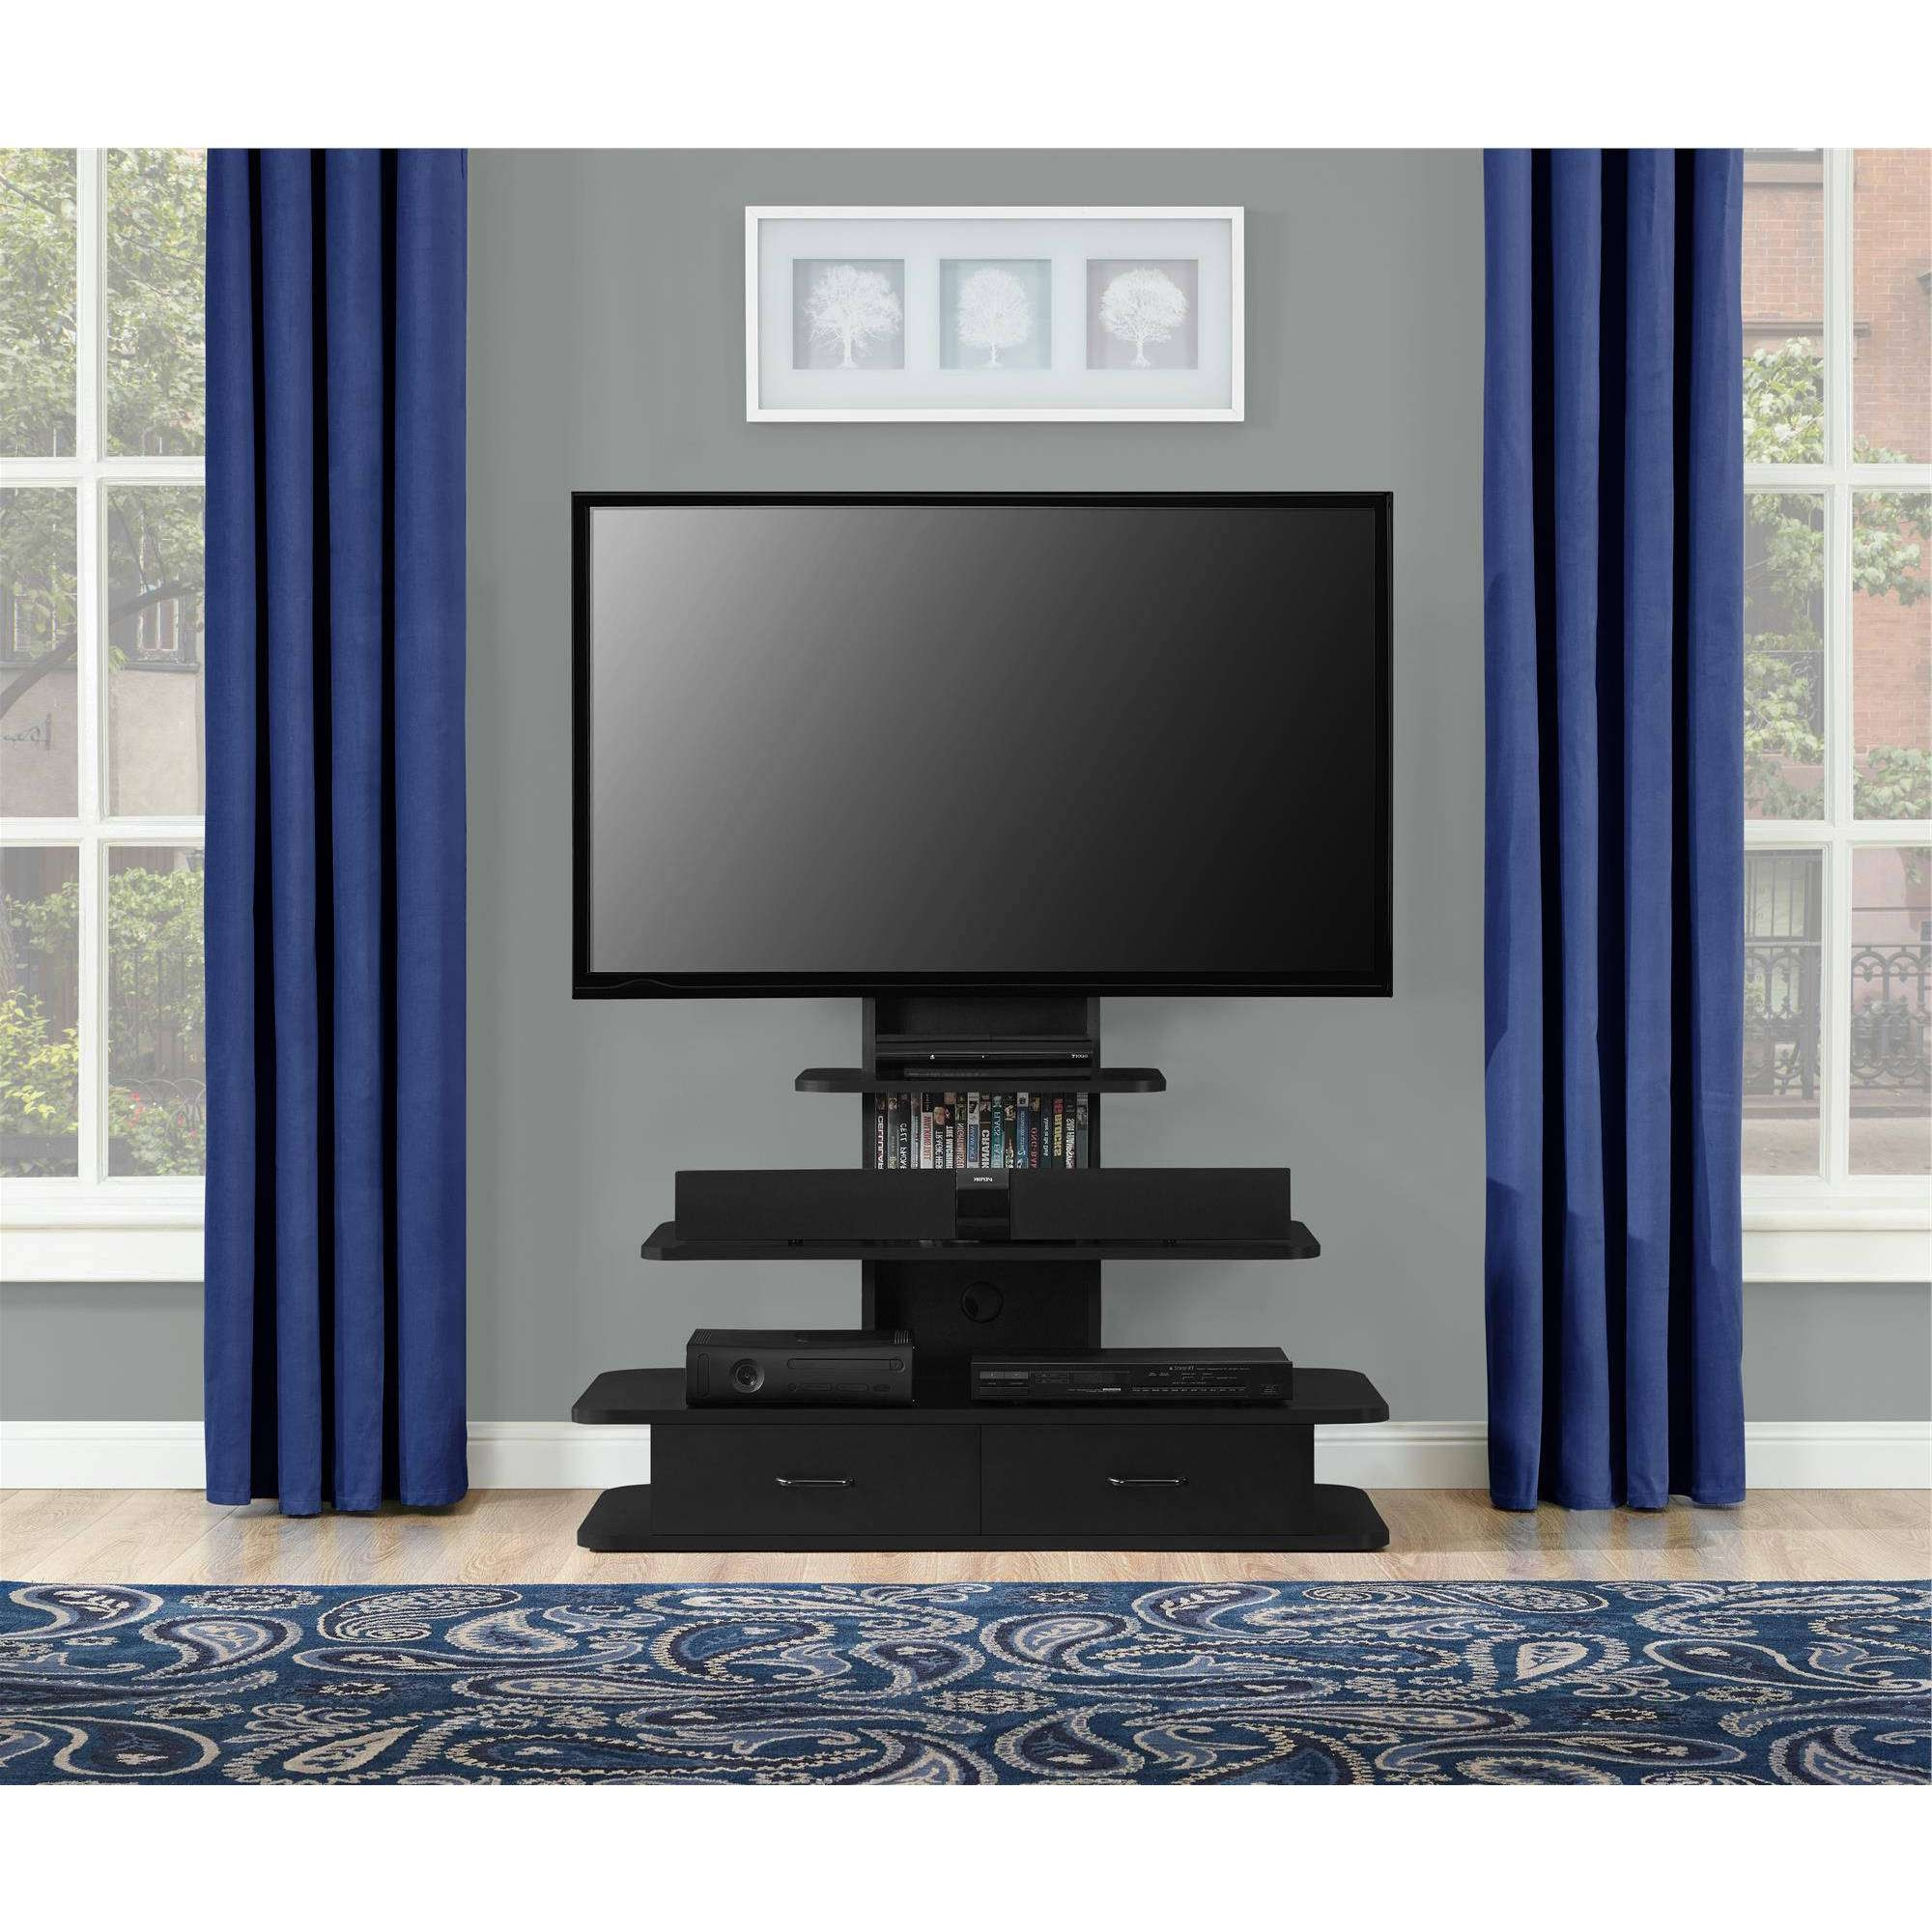 Image Gallery of Tv Stands For 70 Inch Tvs View 14 of 20 Photos